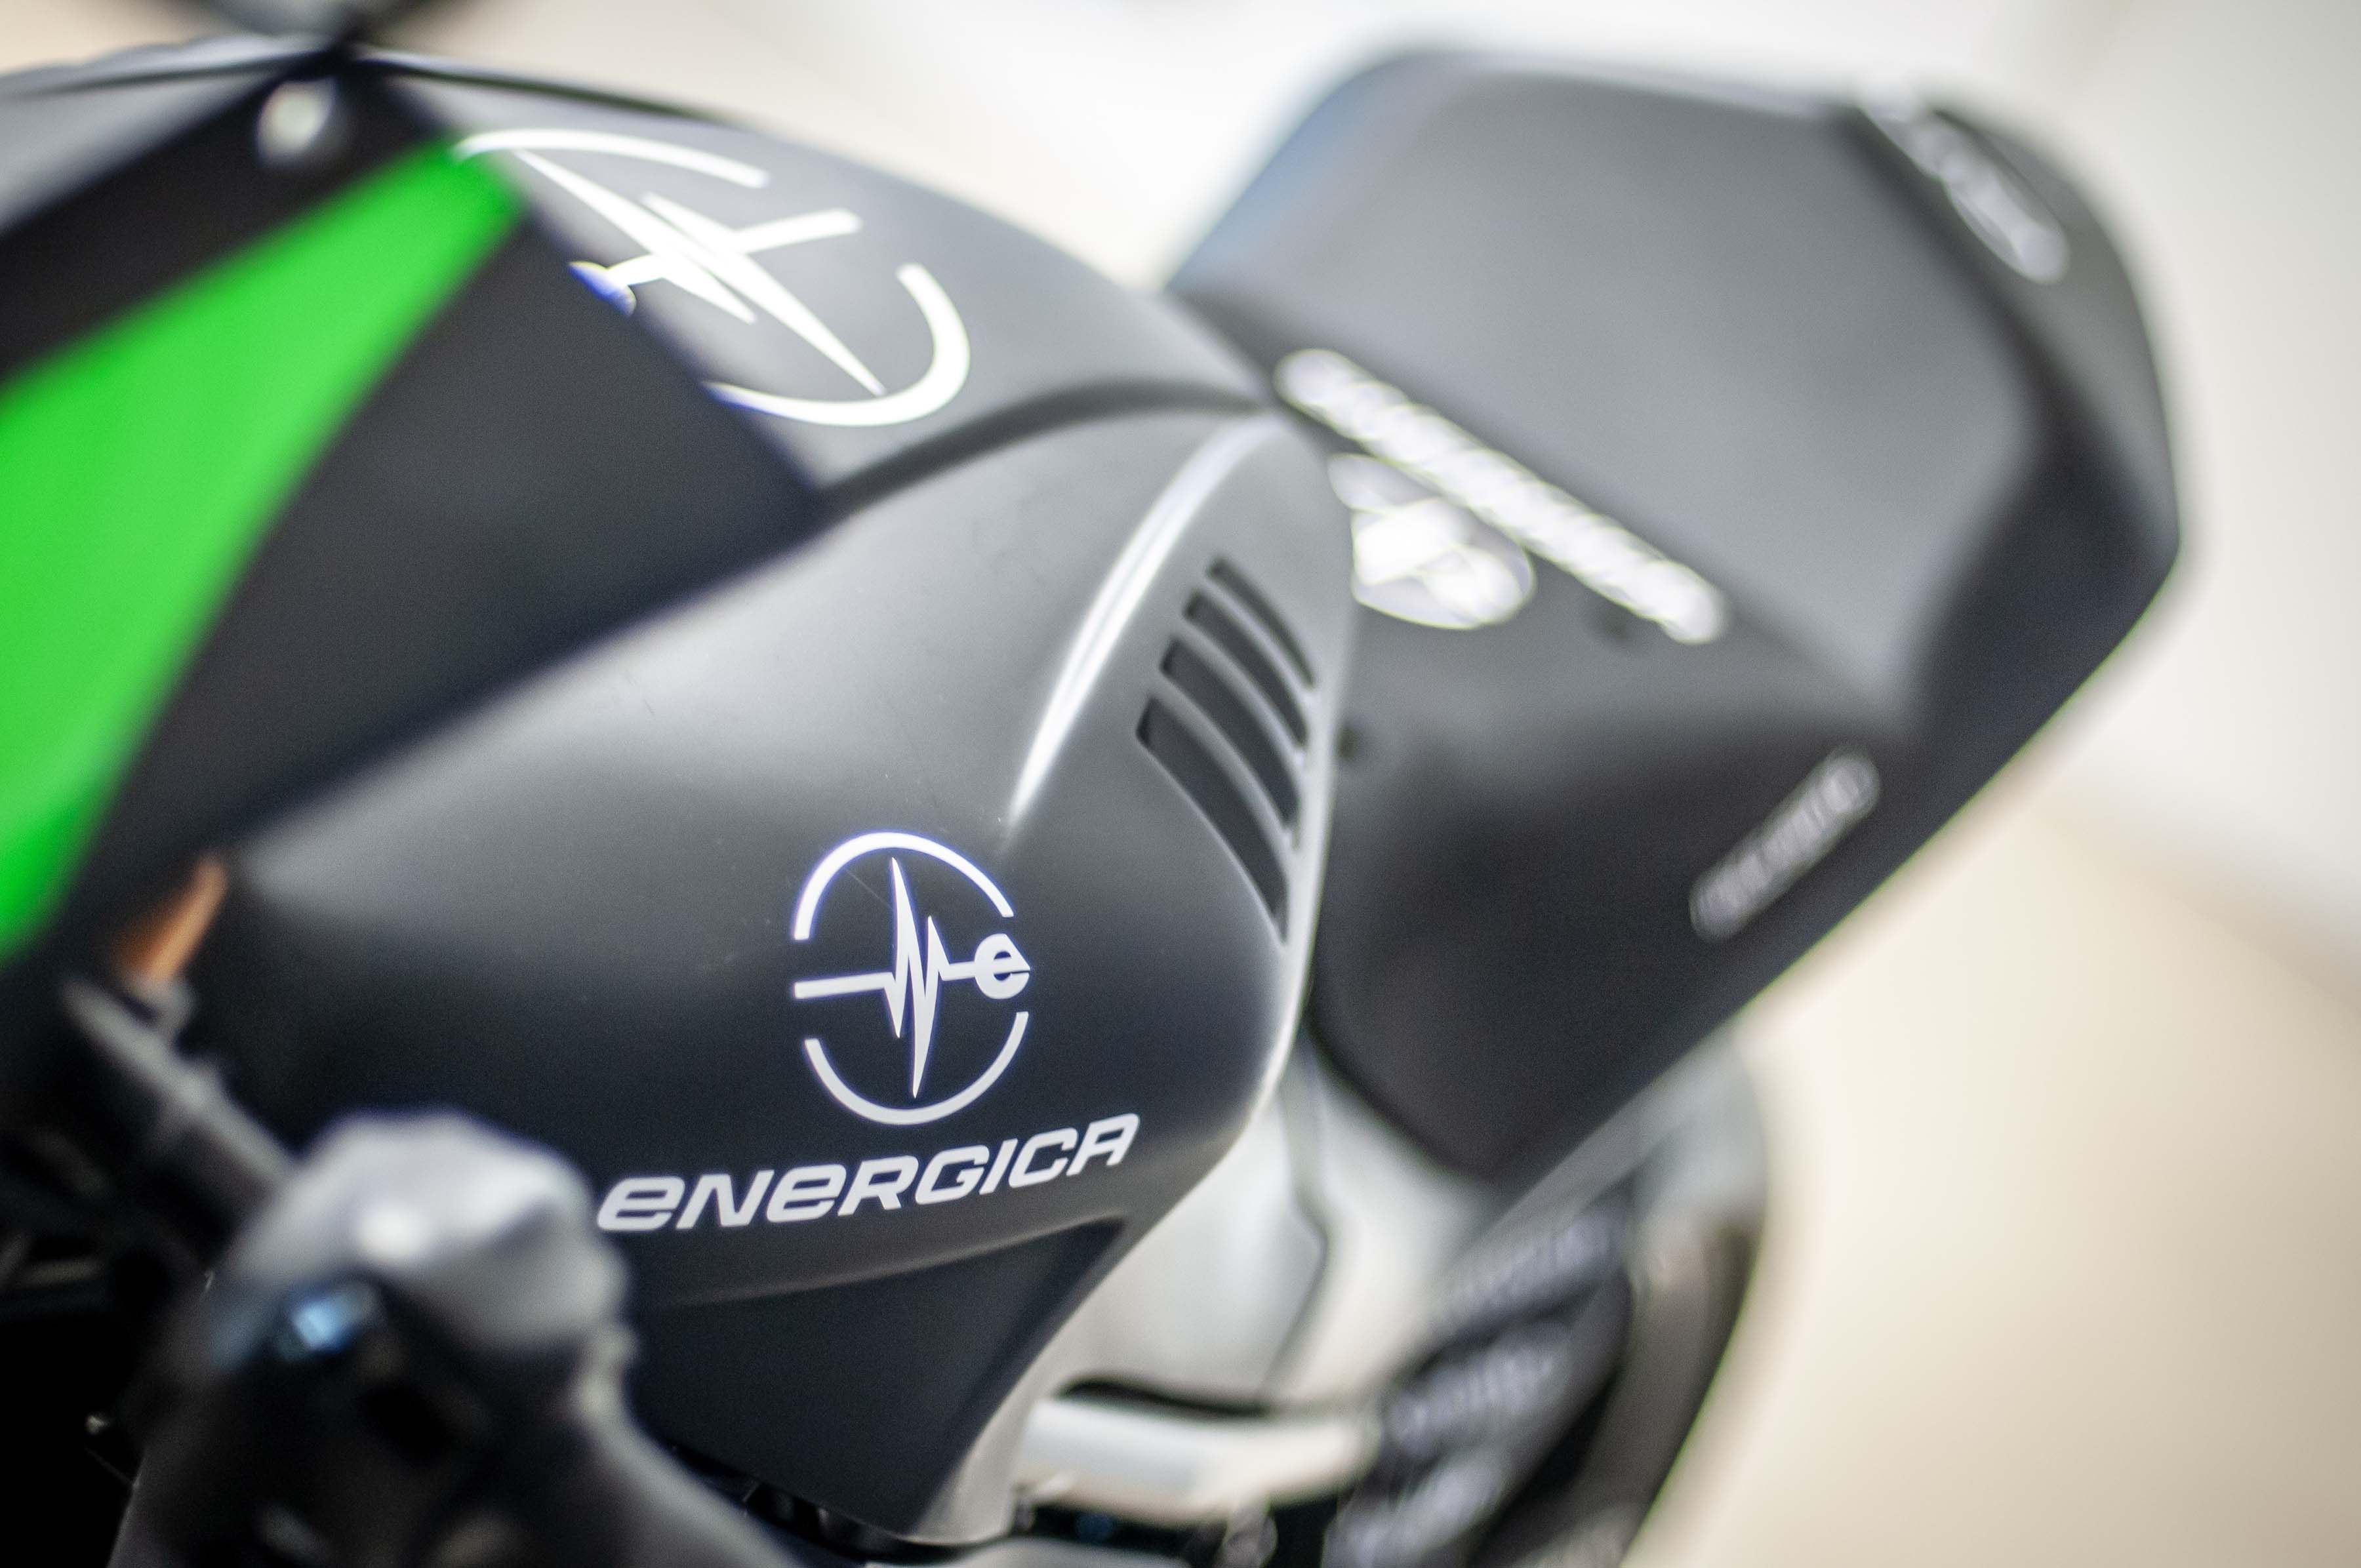 Energica-Ego-Corsa-up-close-Jensen-Beeler-09